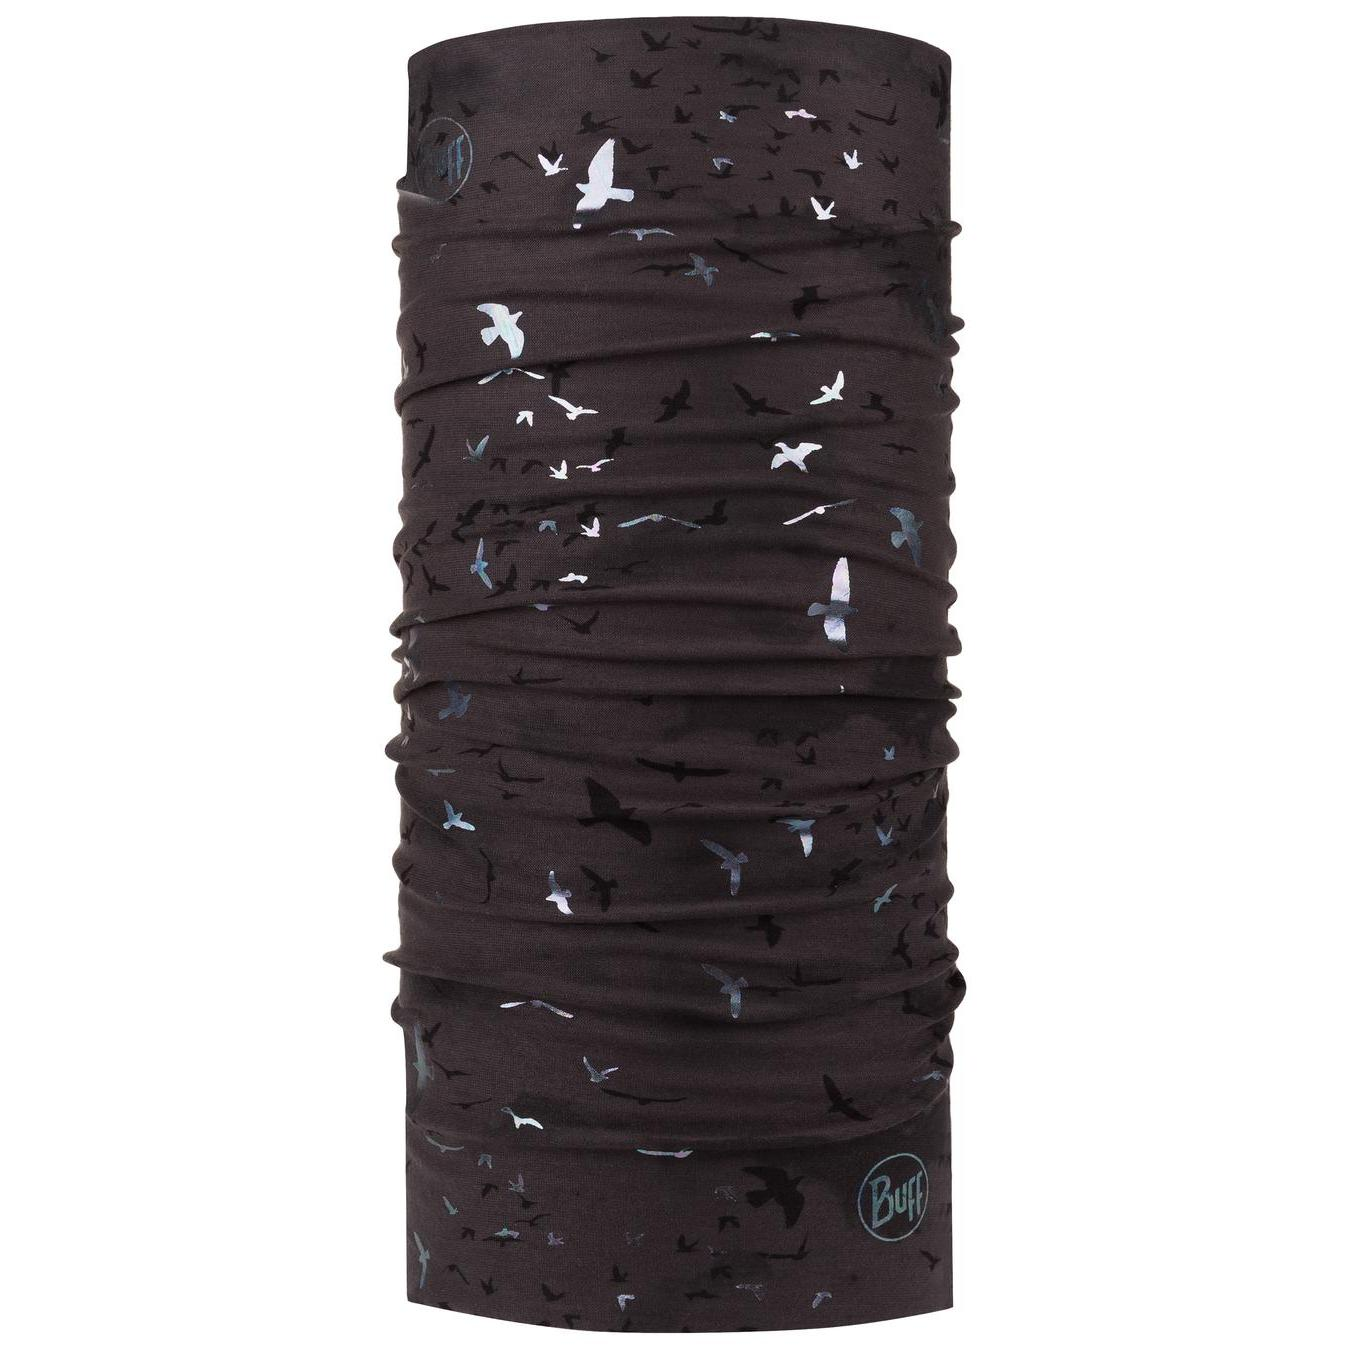 Бандана Buff CHIC ORIGINAL HOVERING BLACK